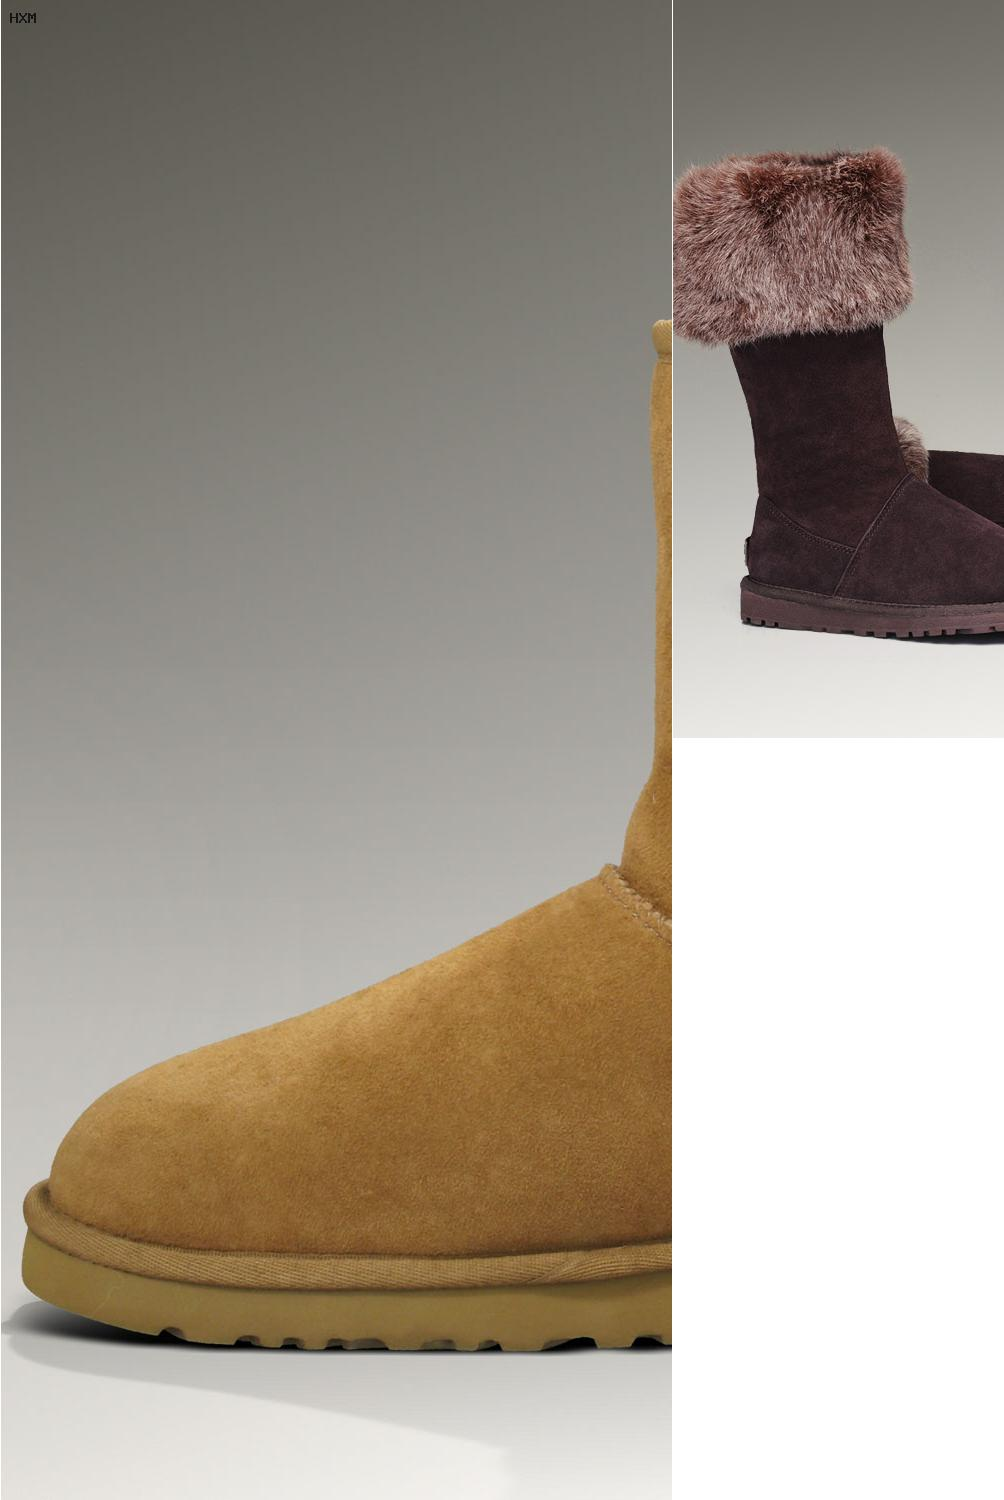 Zalando Sale Ebay Ugg Bailey Button Boots Sale Zalando D3351 B8f73